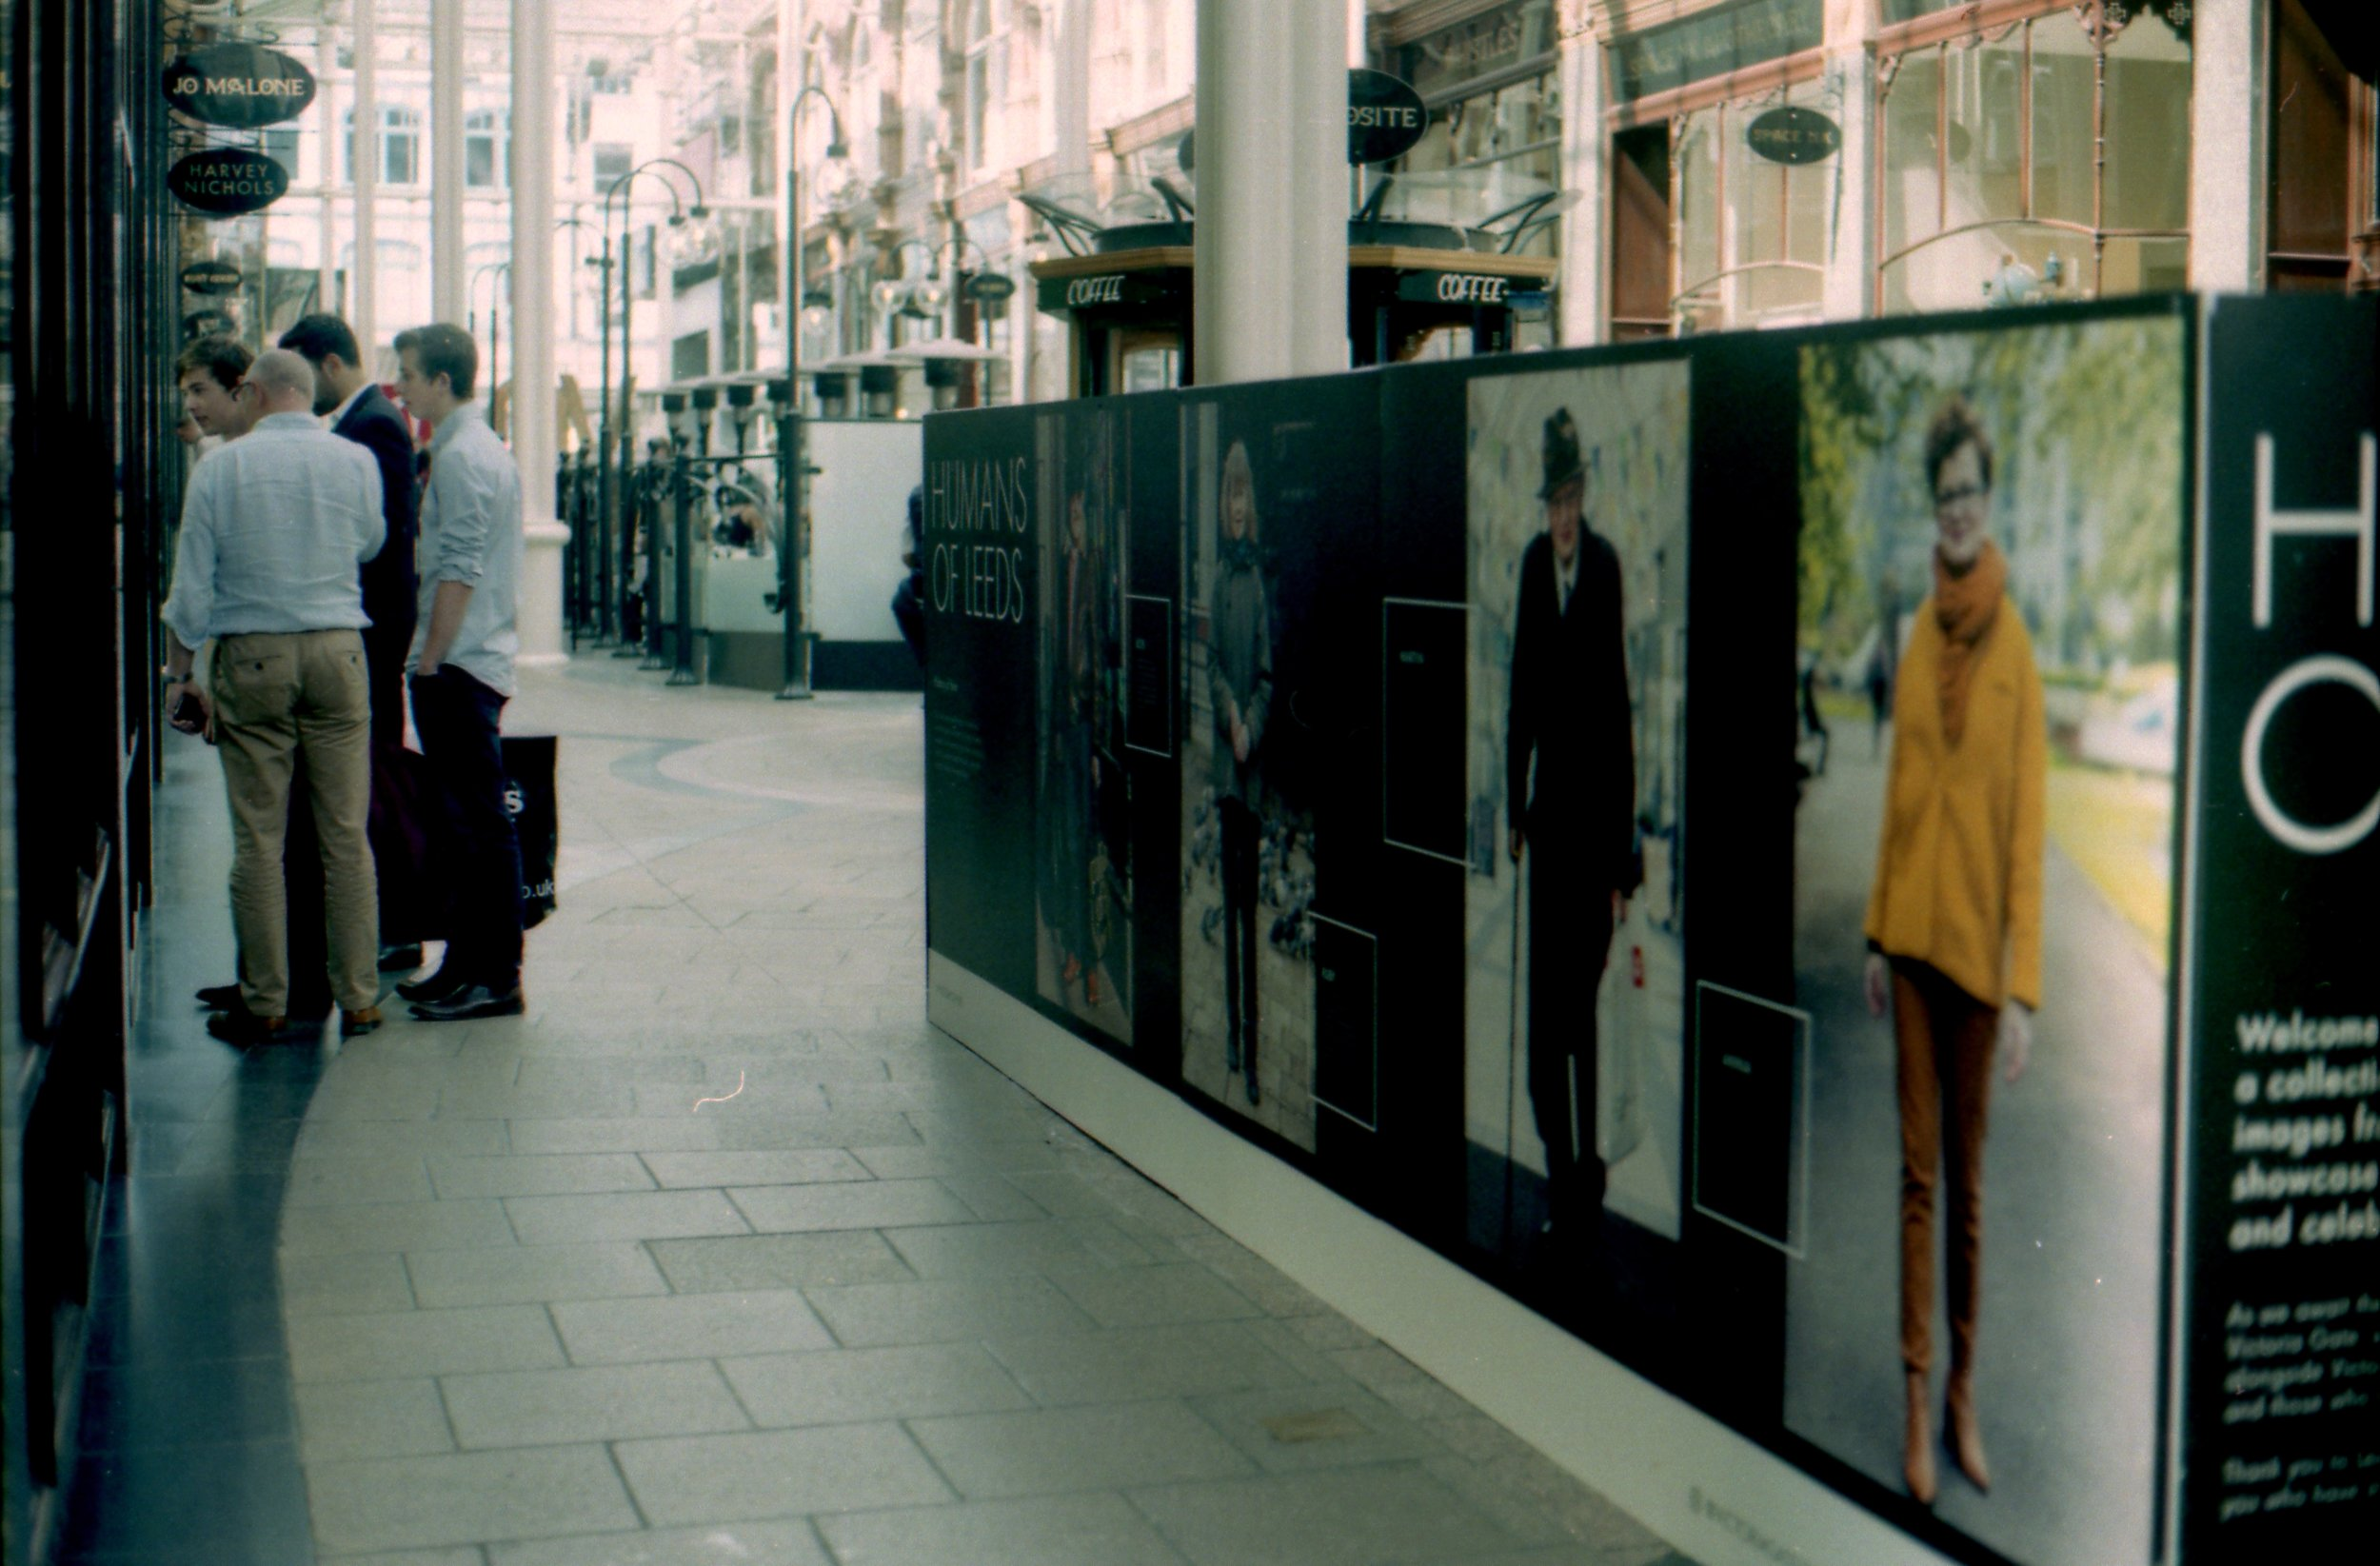 237/366 - I popped into the Victoria Quarter to look at the Human of Leeds exhibition there - I'm starting to see a pattern of out of focus photos when I don't quite feel comfortable in a location and I rush the shot. This is definitely something to work on over the last third of this project.